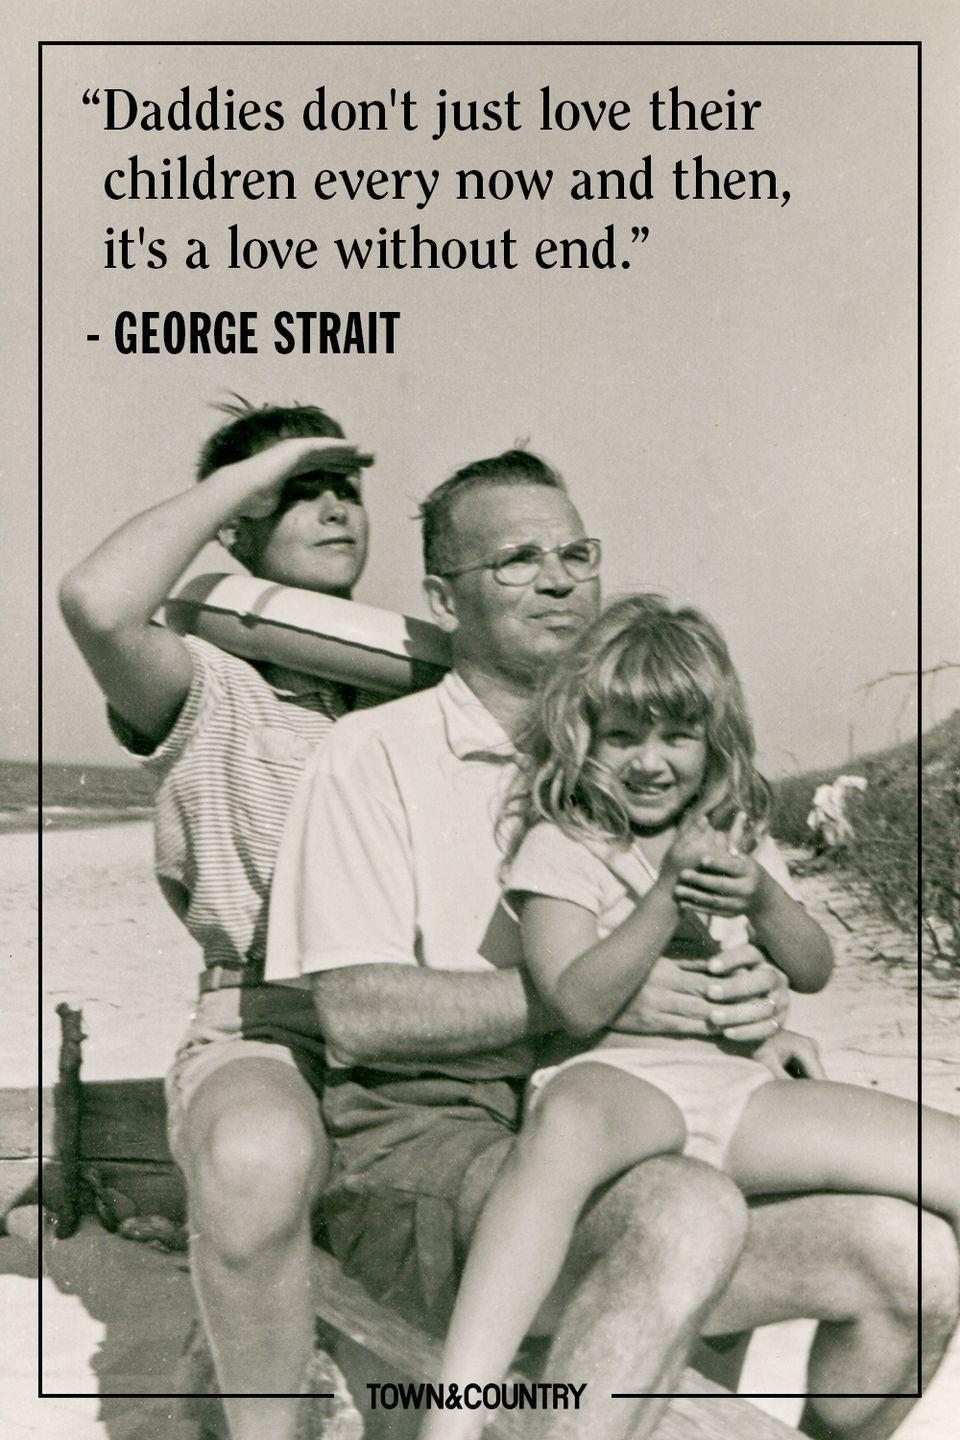 "<p>""Daddies don't just love their children every now and then, it's a love without end.""</p><p>- George Strait</p>"